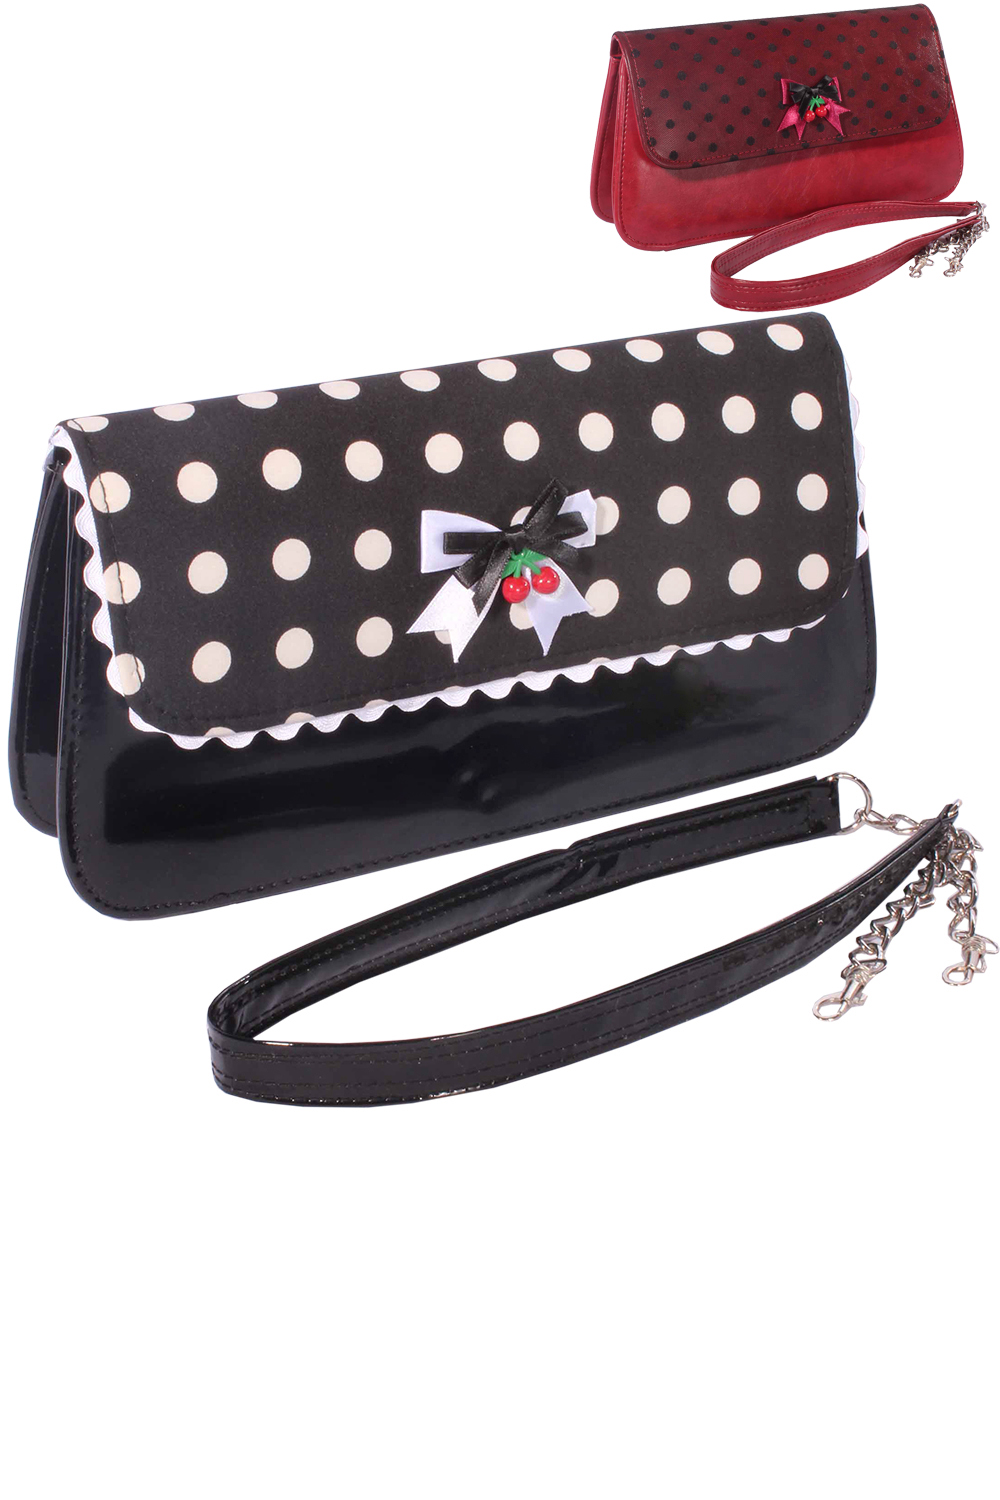 Polka Dots retro rockabilly Punkte BOW Cherry Clutch Handtasche